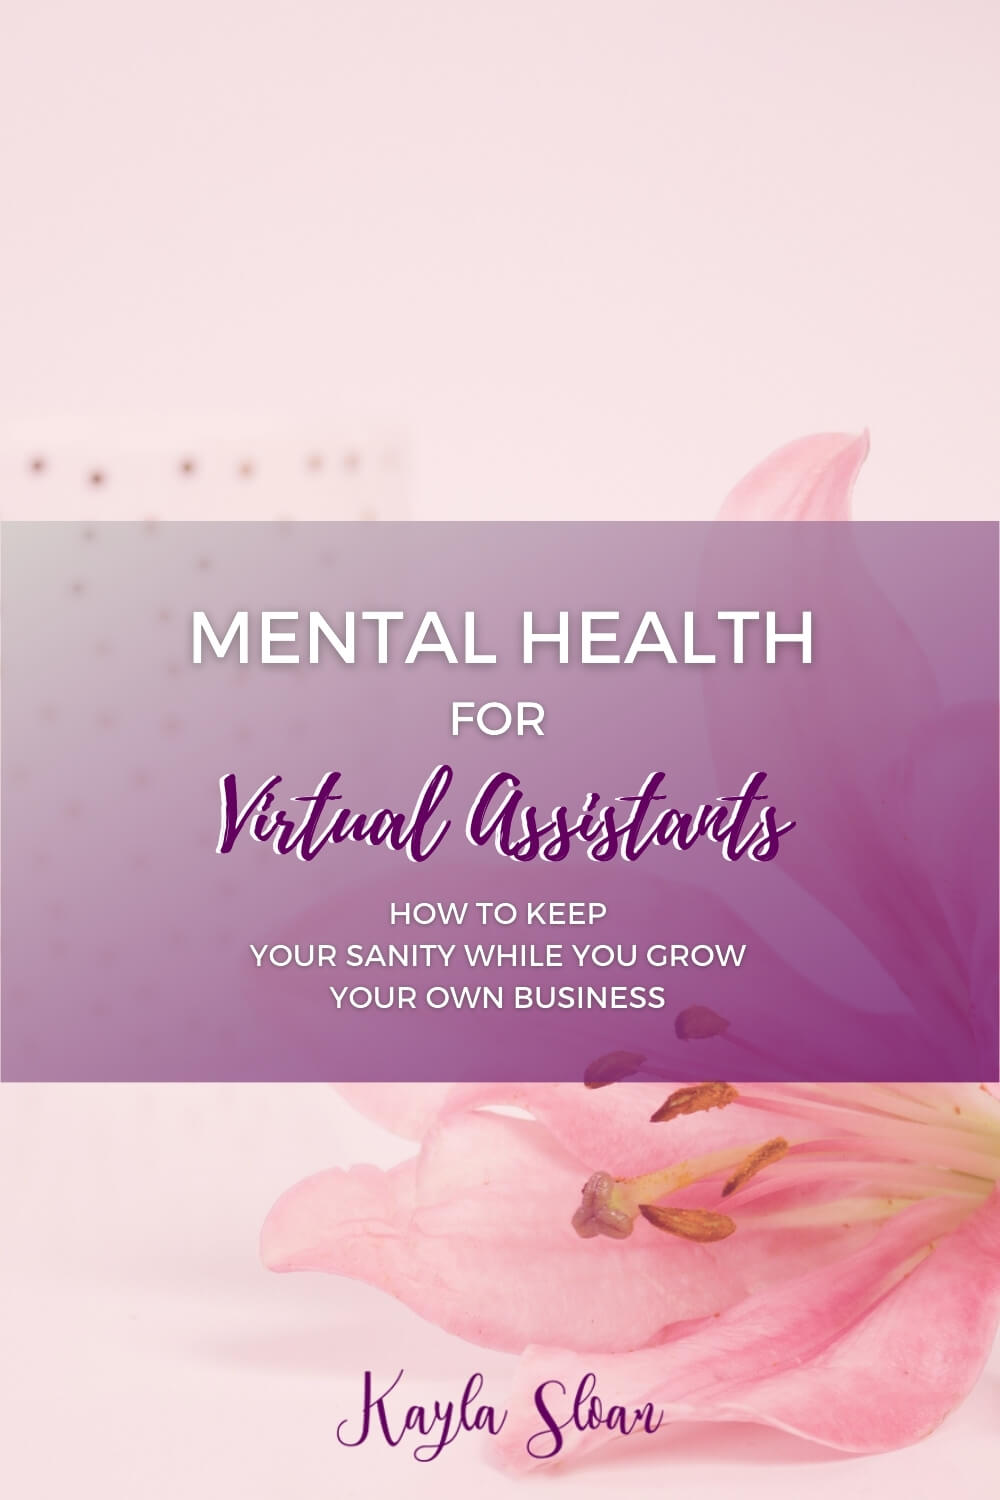 Mental Health for Virtual Assistants: 5 Tips to Keep Your Sanity While You Grow Your Own Business